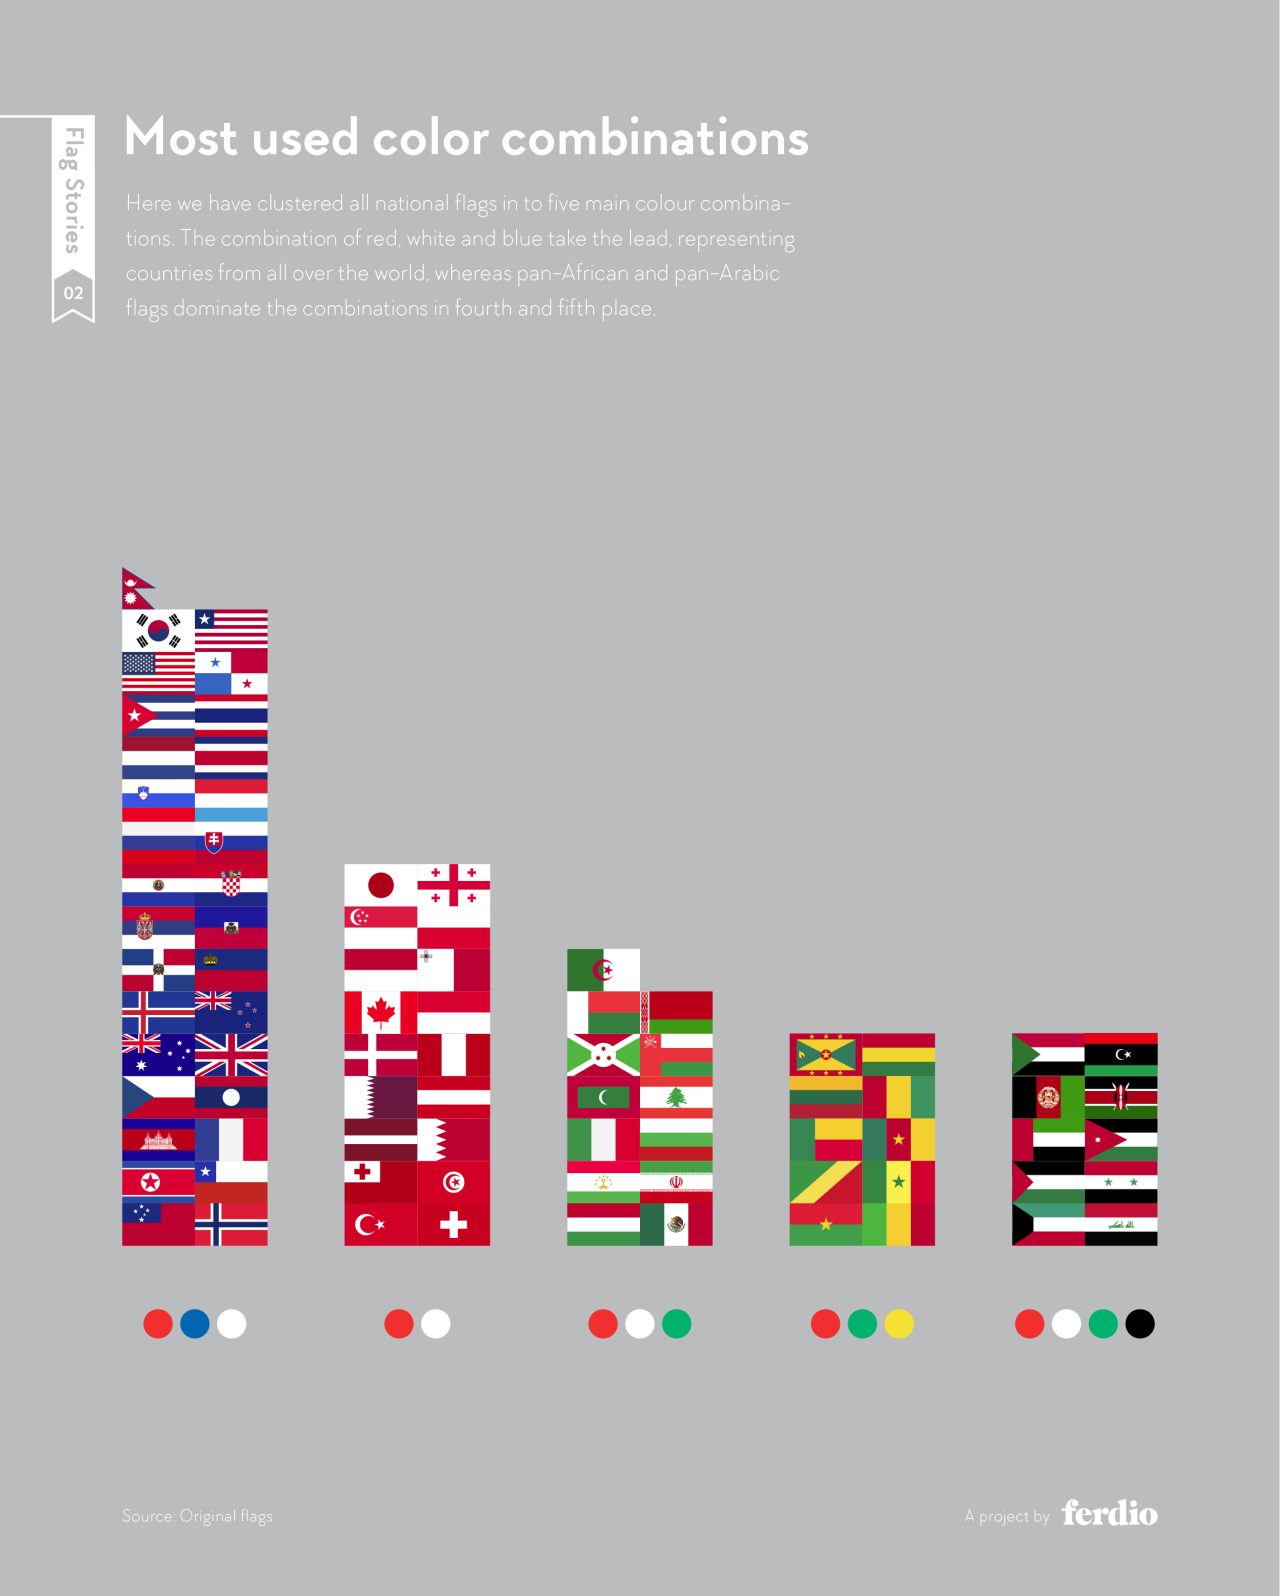 interesting facts about flag colors and design that you probably